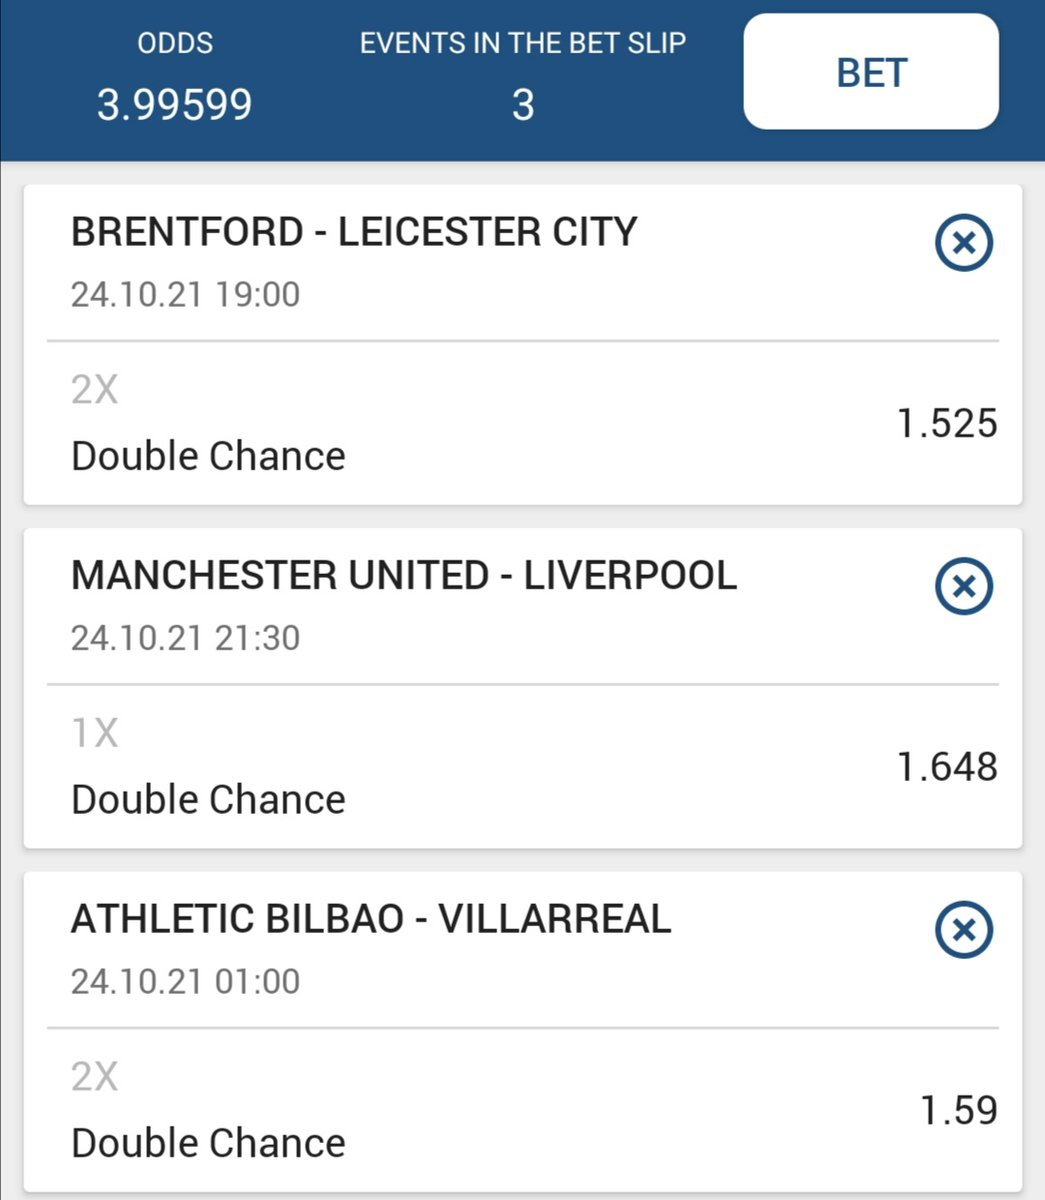 1st one  #Brentford vs #Leicester_city  Leicester City or x  #ManchesterUnited vs #Liverpool   Manu or x  #AthleticoBilbao vs #Villarreal   Villarreal or x